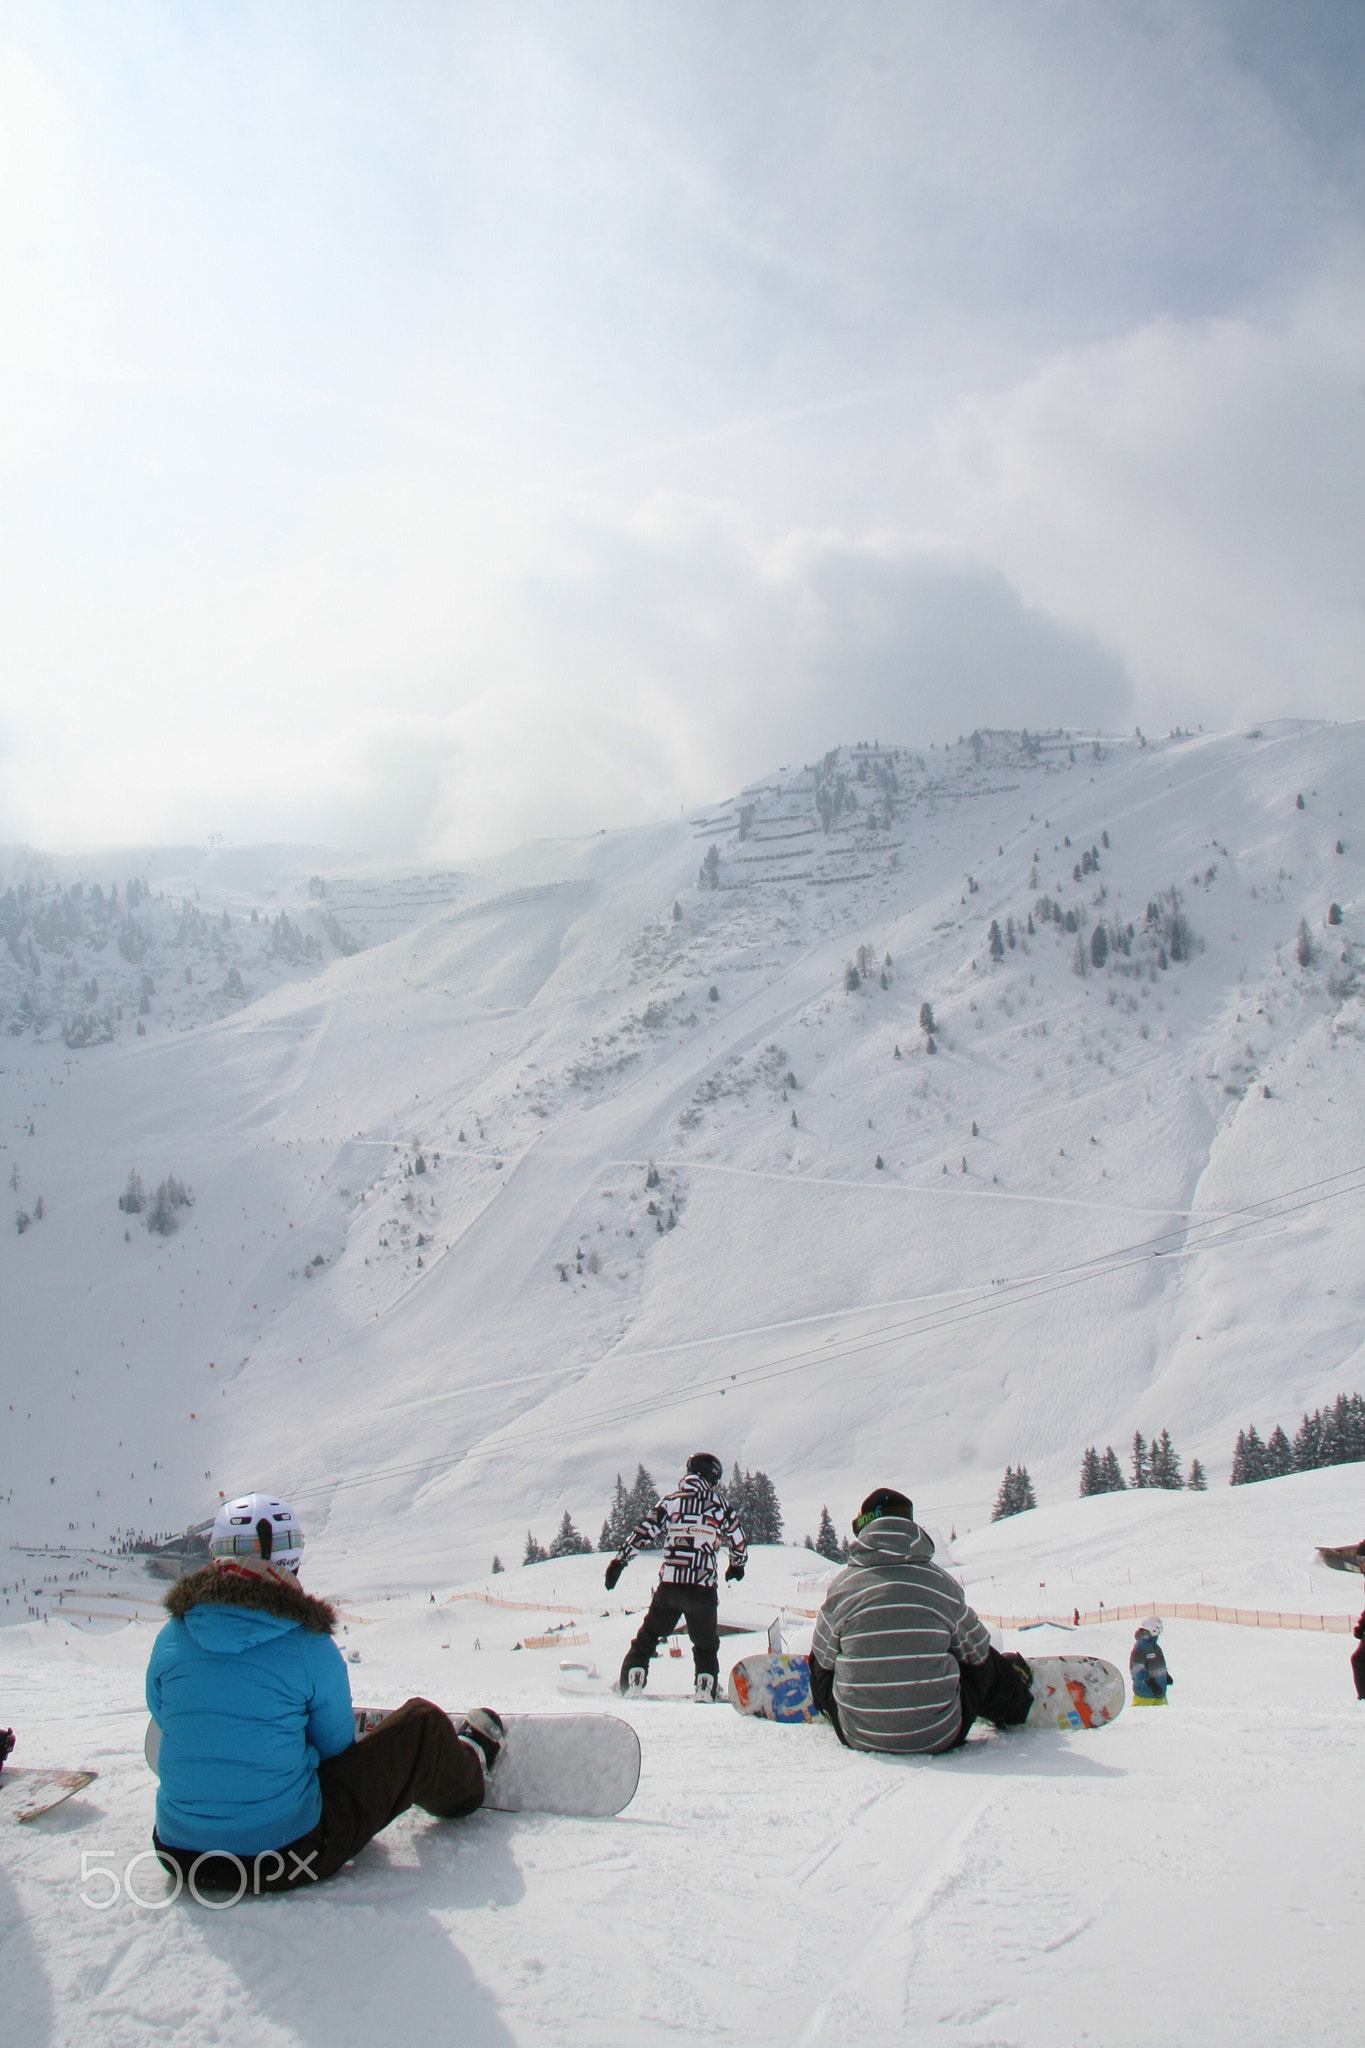 Skiing and snowboarding in Zillertal, Austria